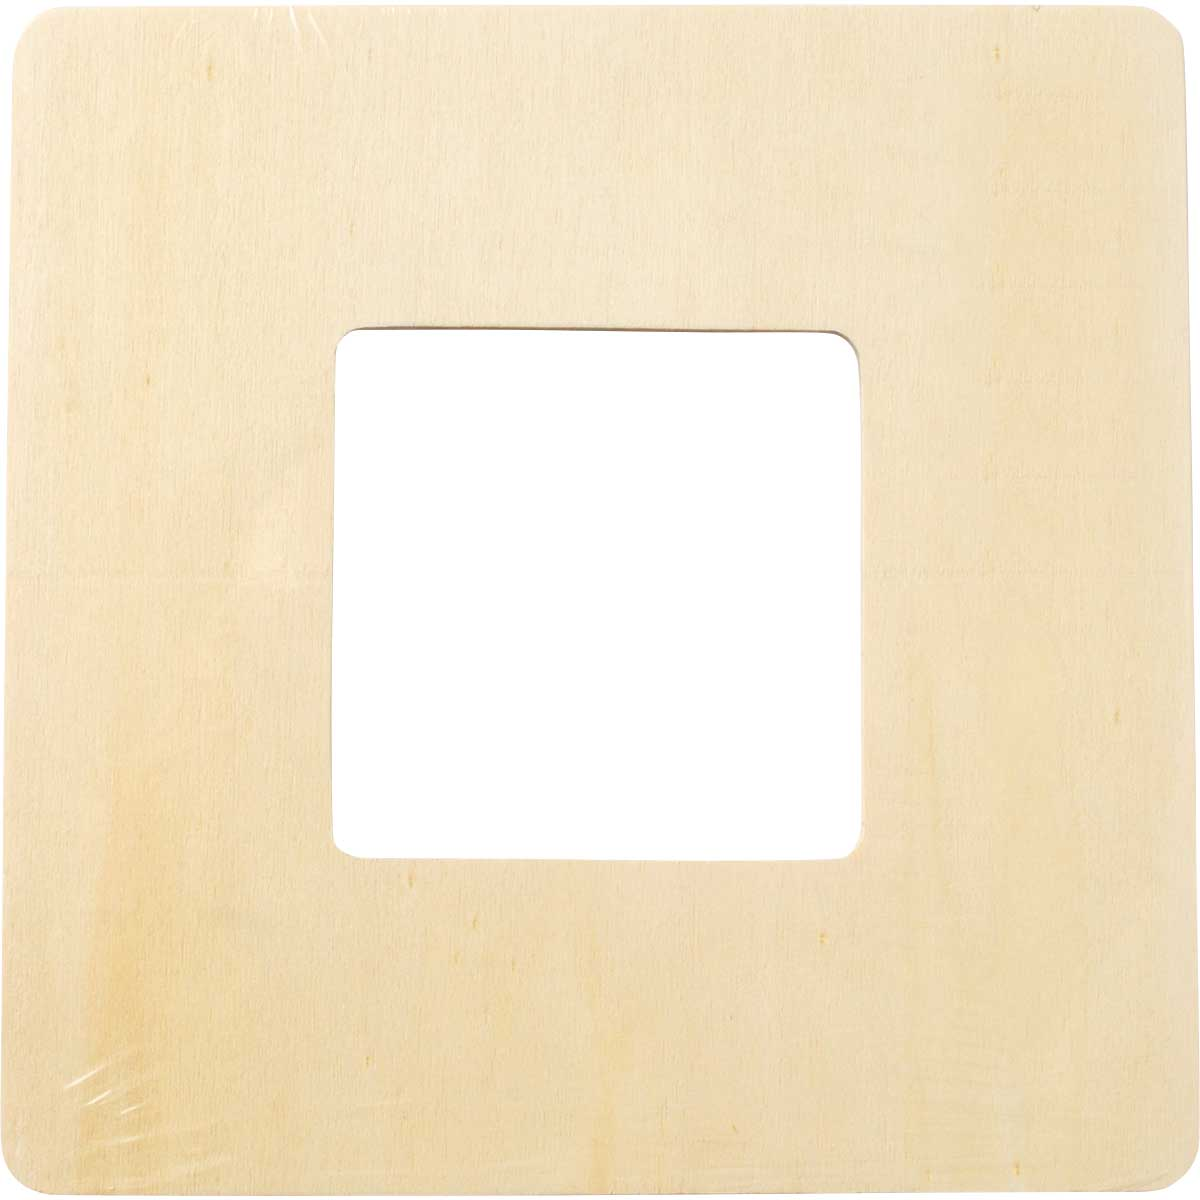 Plaid ® Wood Surfaces - Frames - Square - 97540